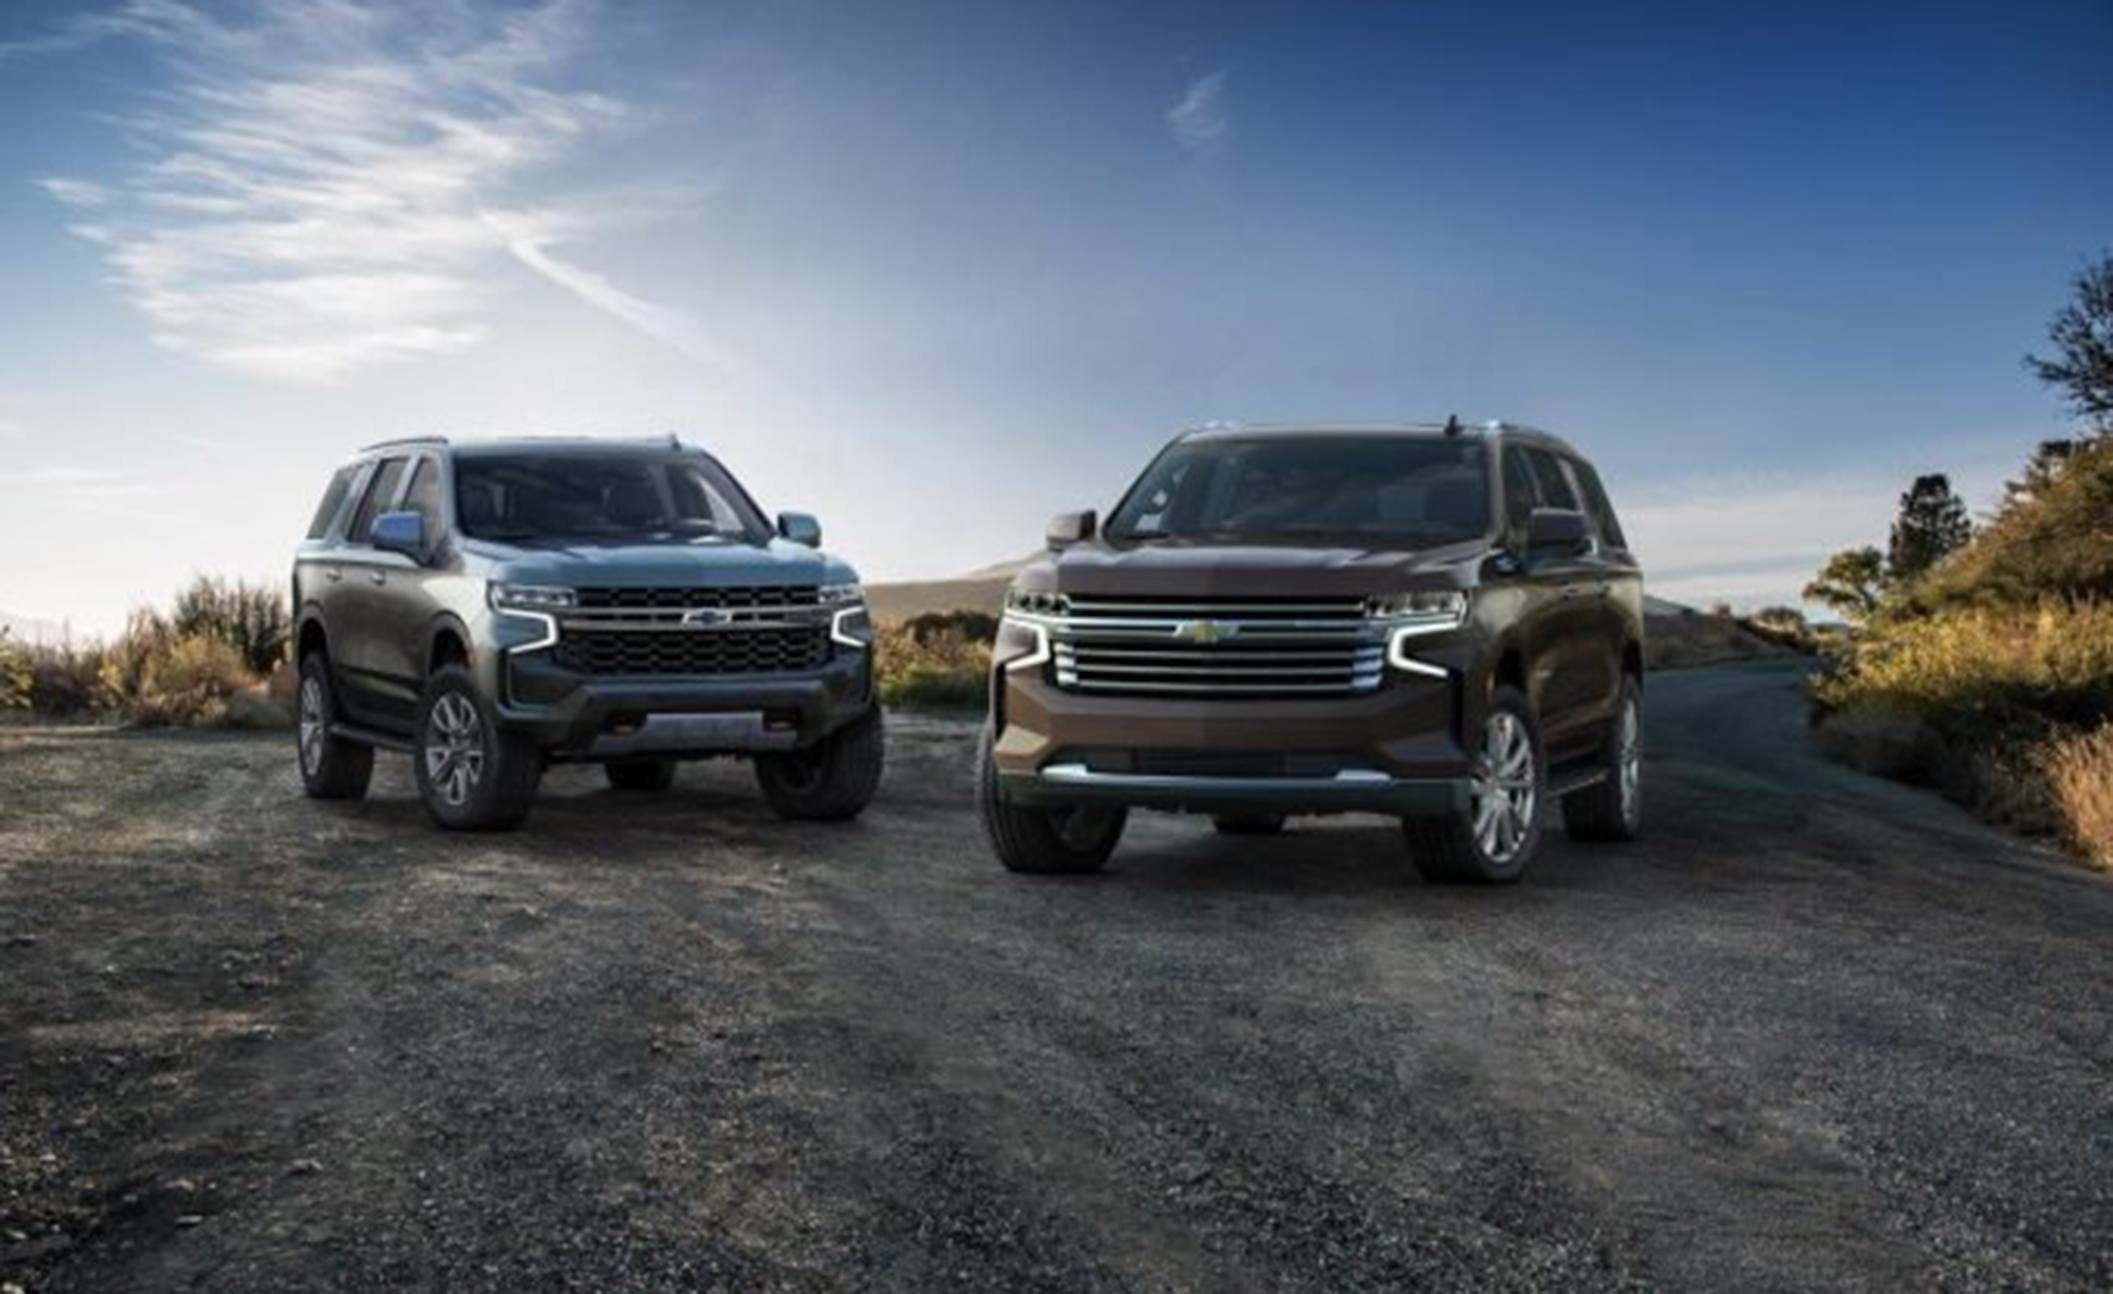 2021 Dodge Ram 1500 Reviews In 2020 Chevrolet Tahoe Chevrolet